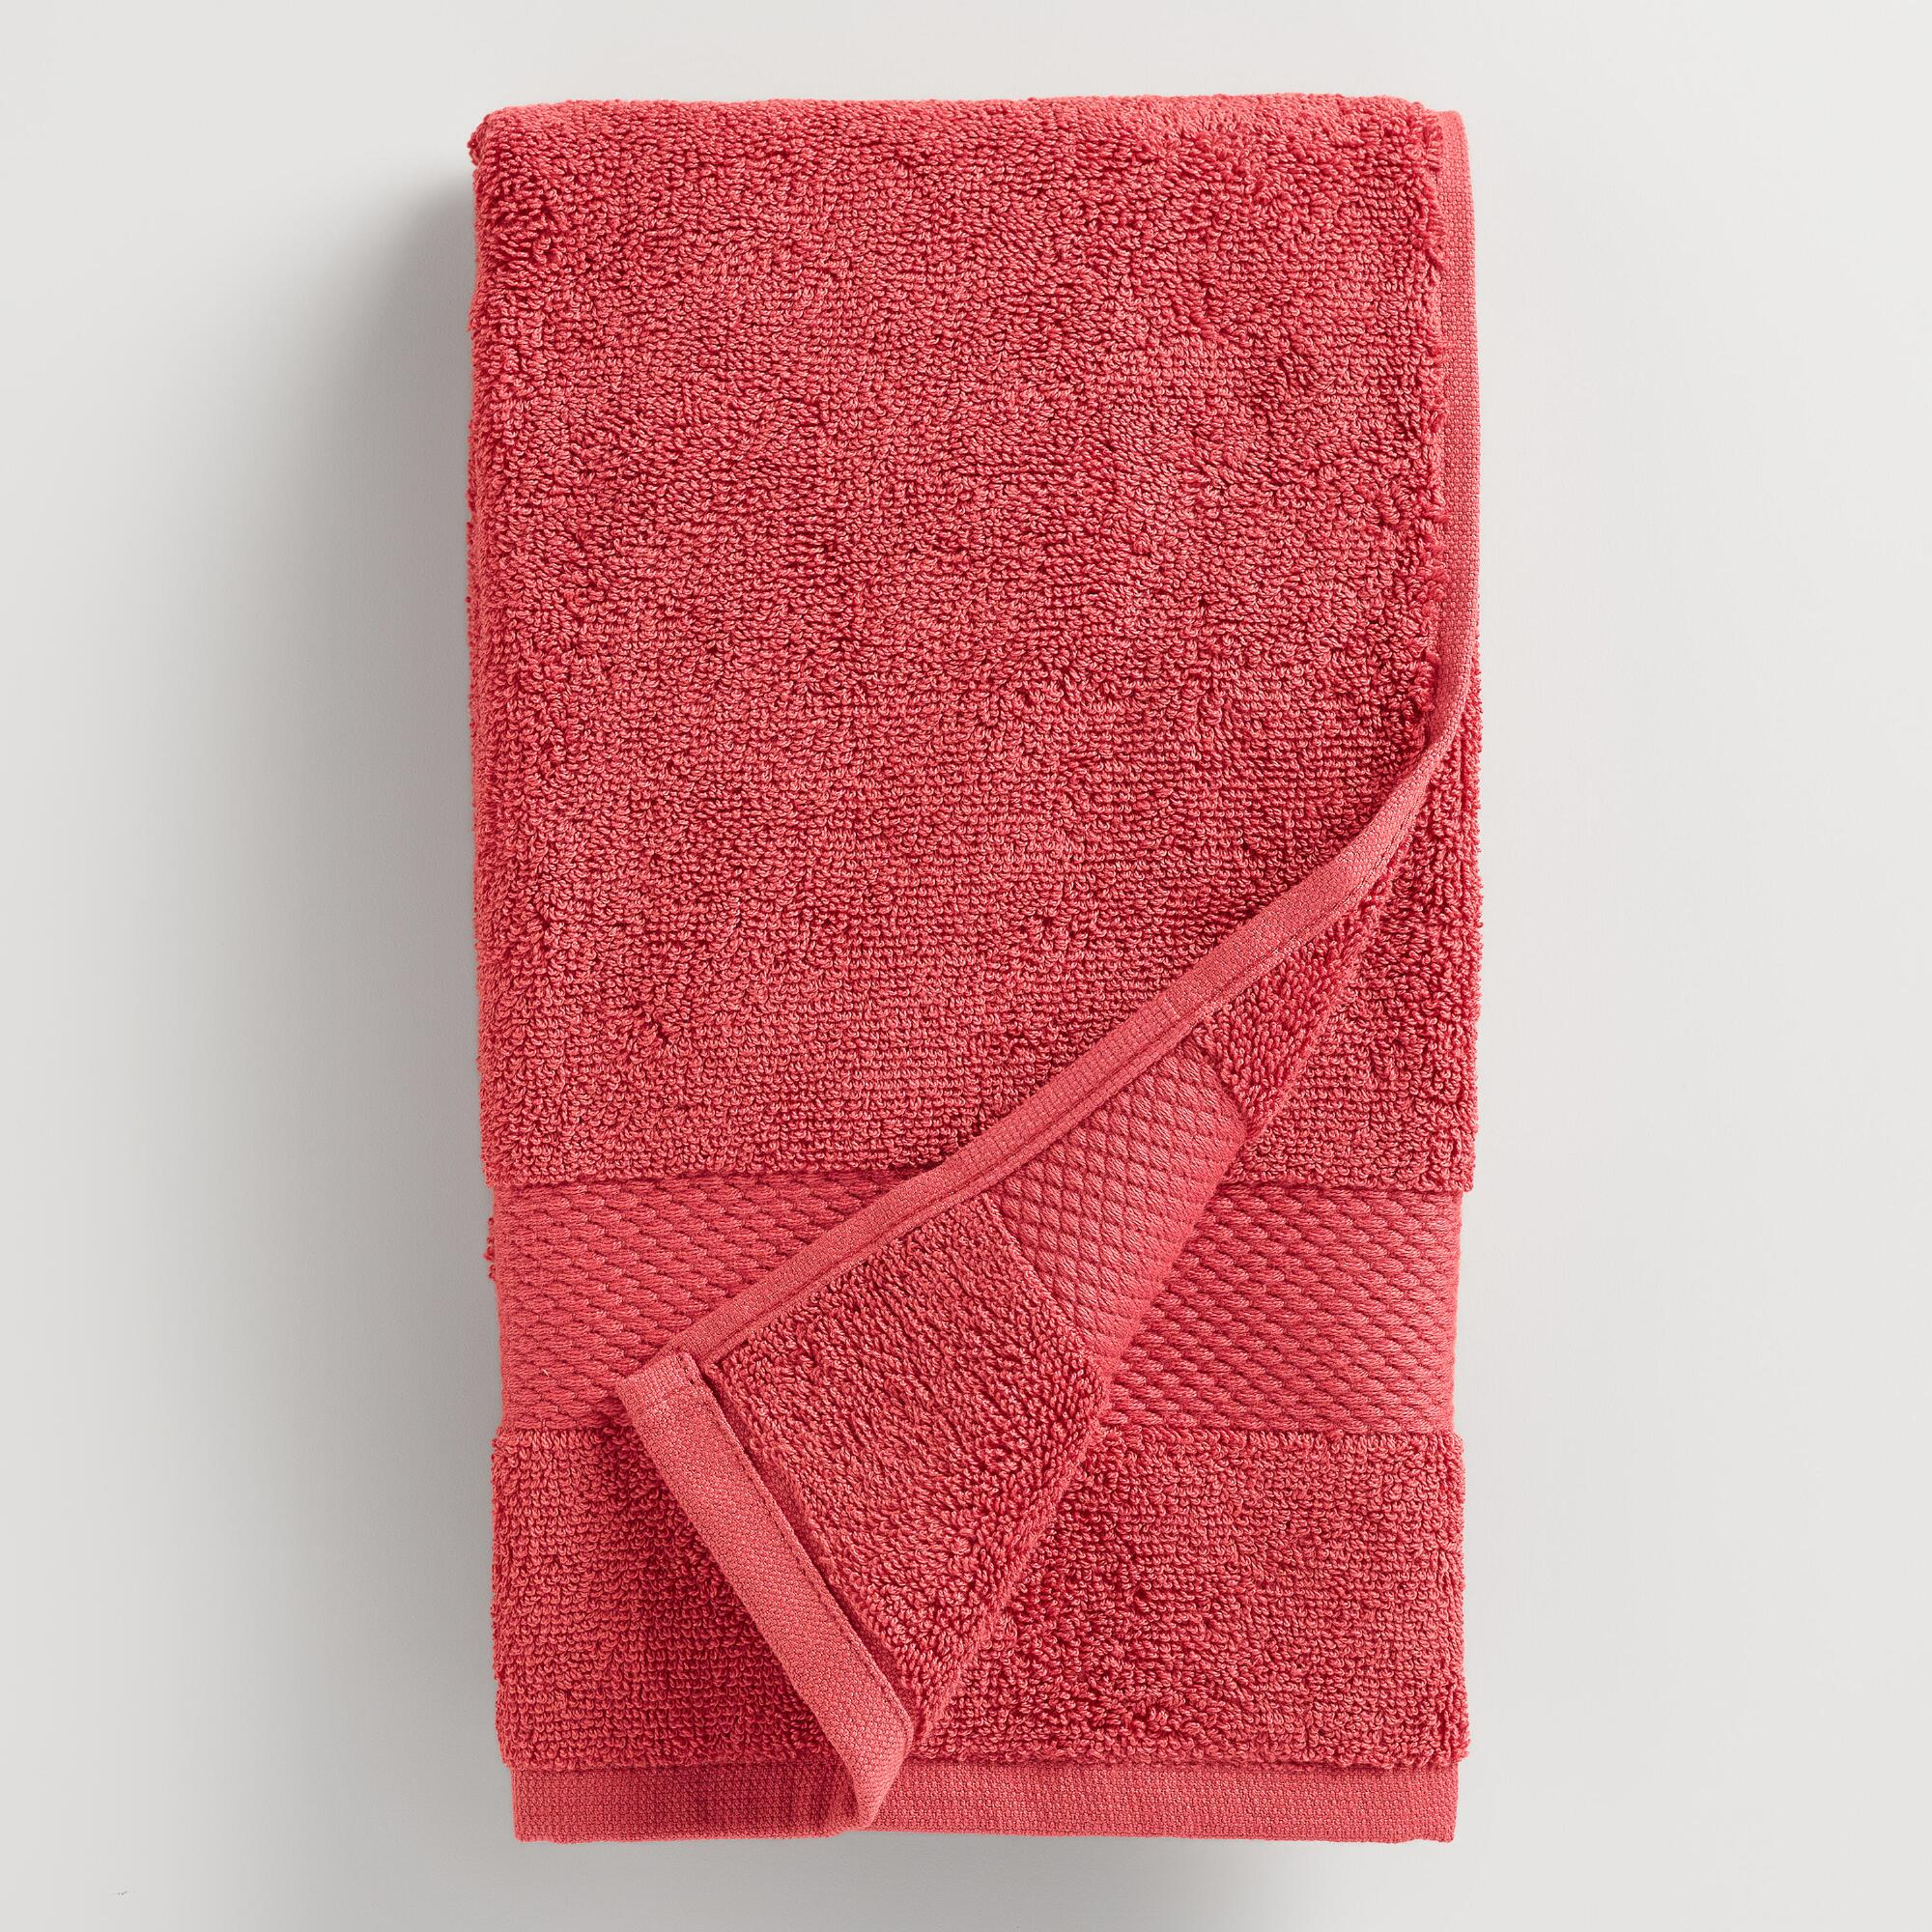 Coral Cotton Hand Towel